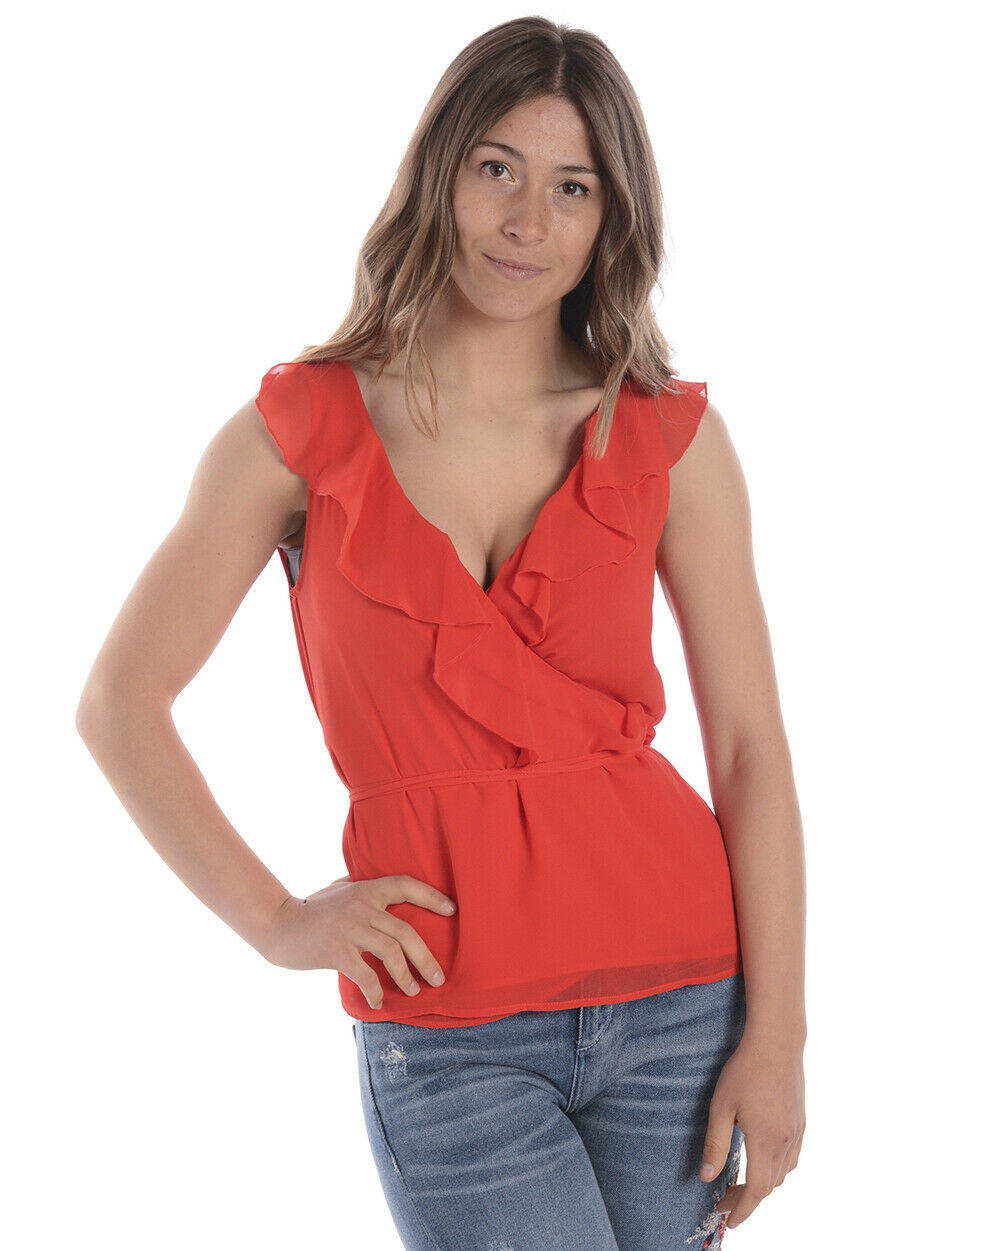 Top T shirt Liu Jo Sweatshirt MADE IN ITALY damen rot C18307T1658 81662